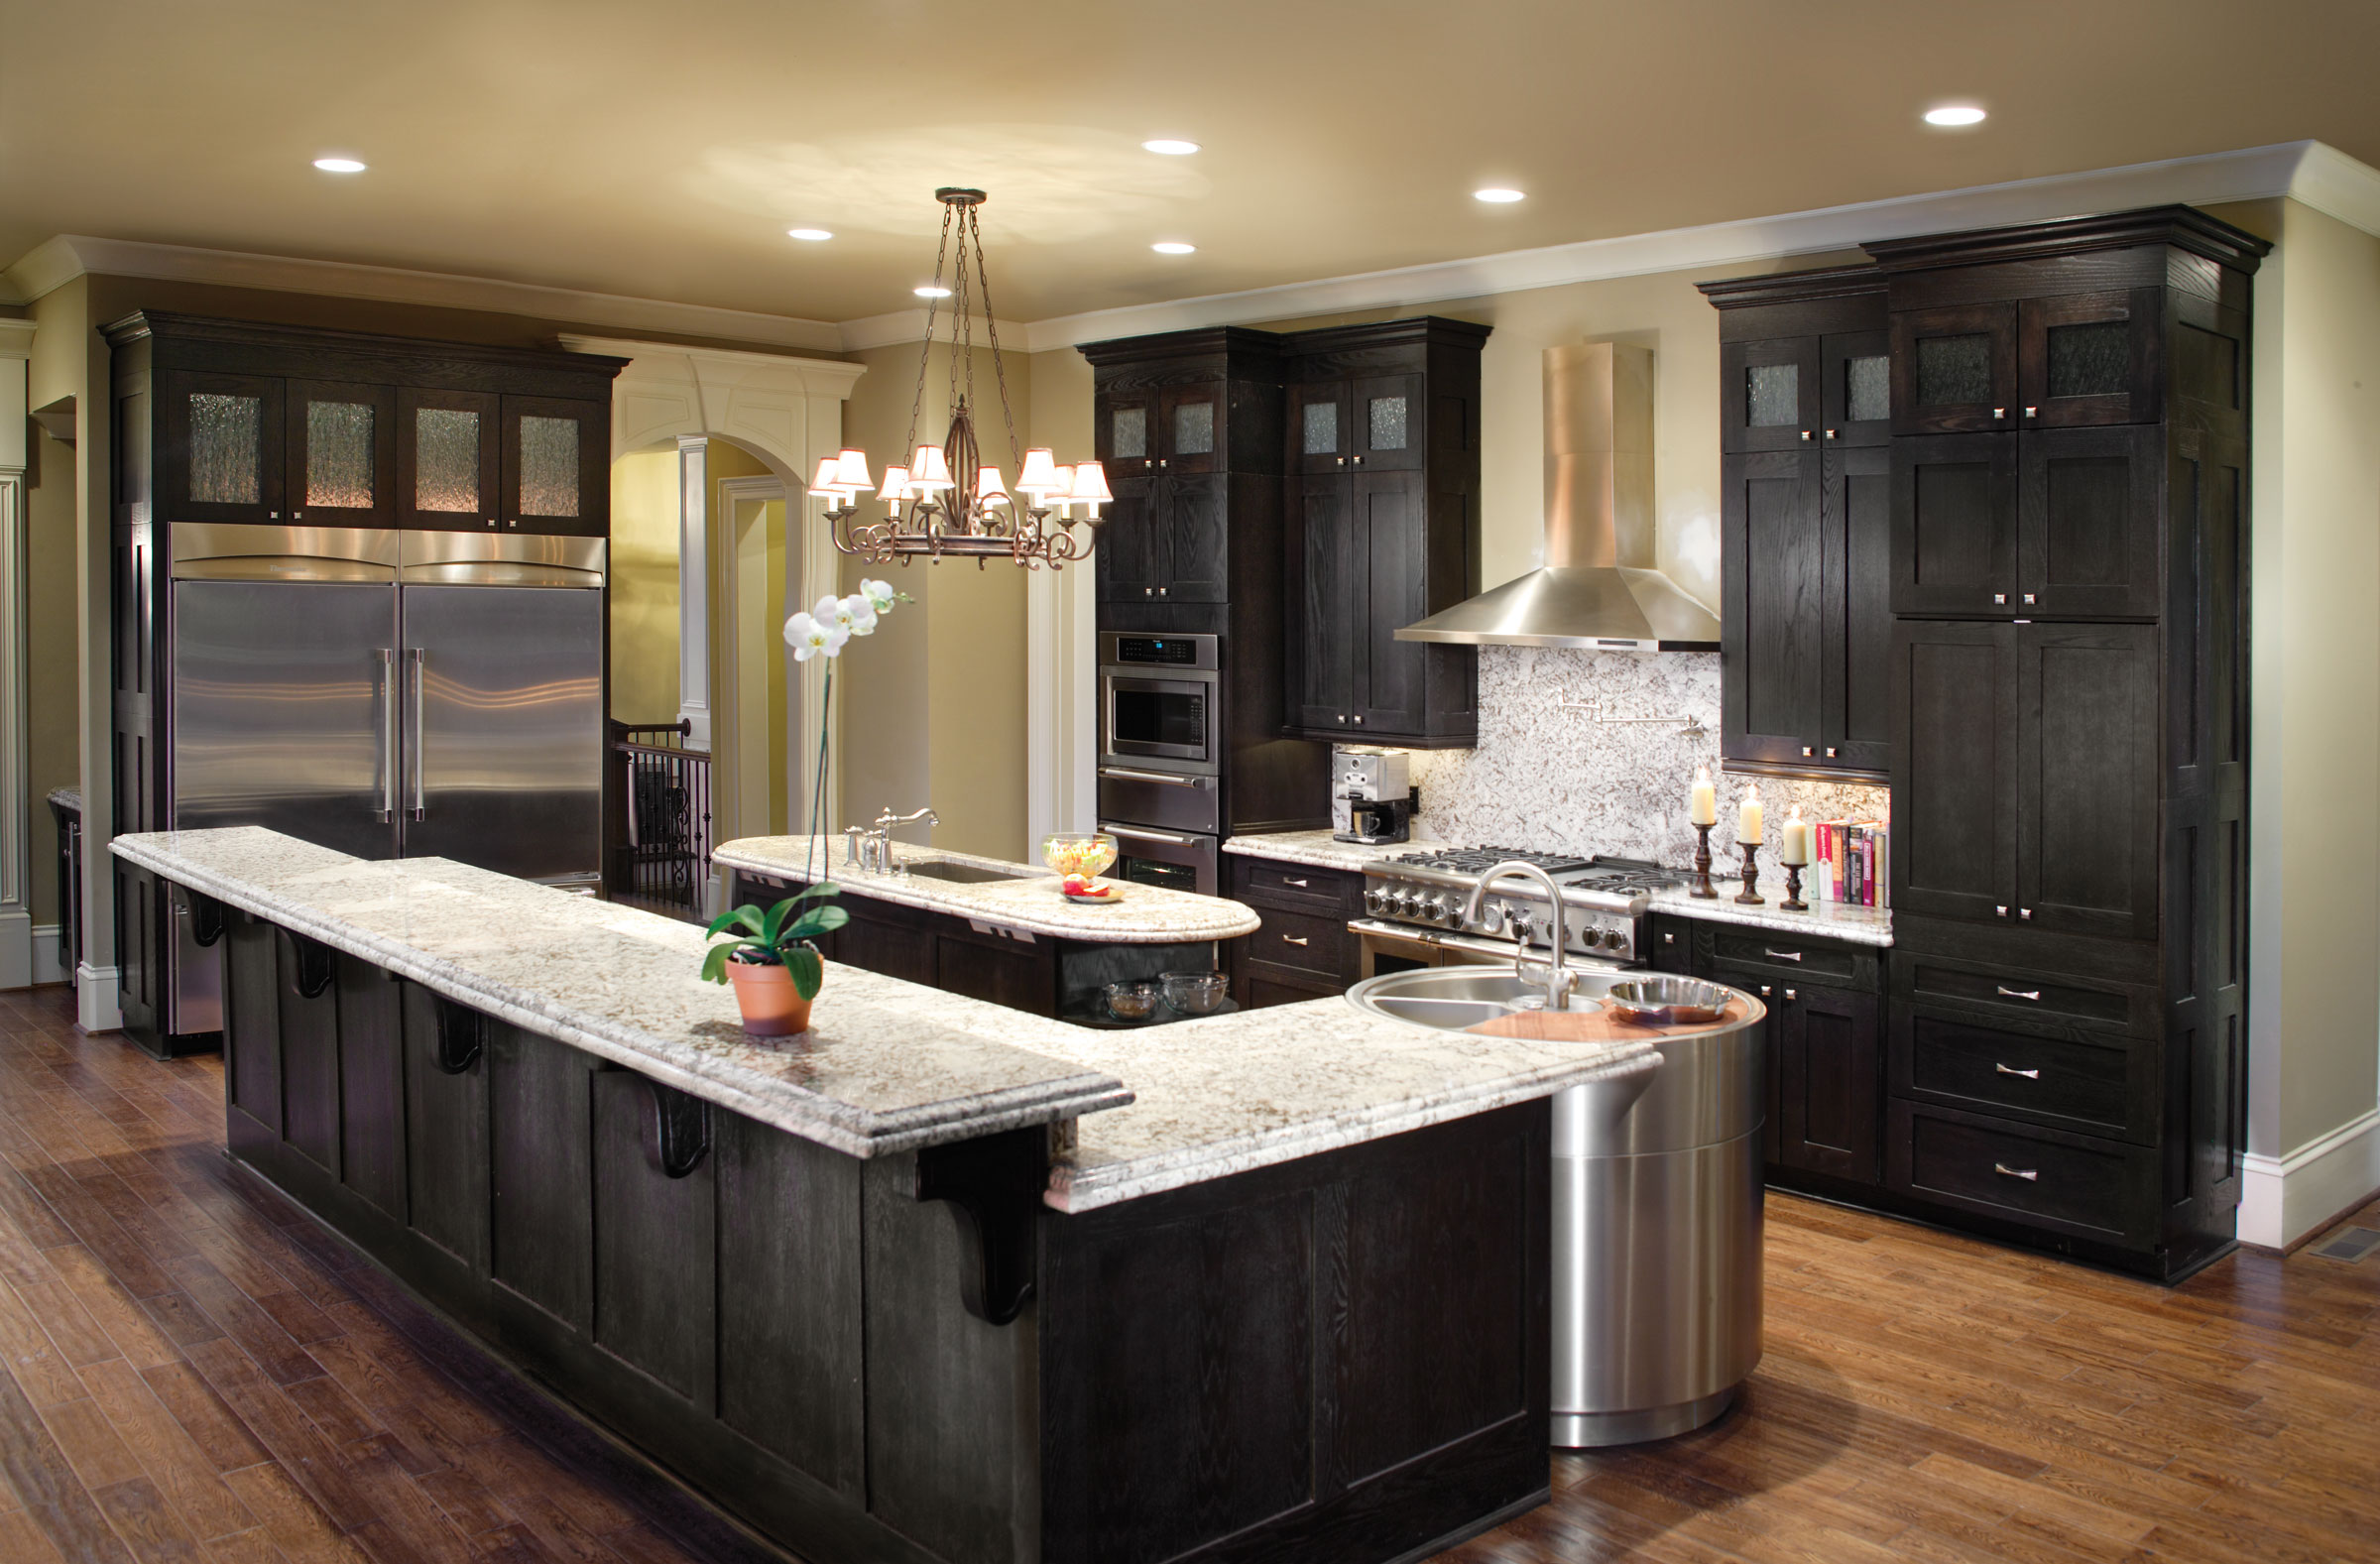 Custom bathroom kitchen cabinets phoenix cabinets by for Kitchen cabinets nearby